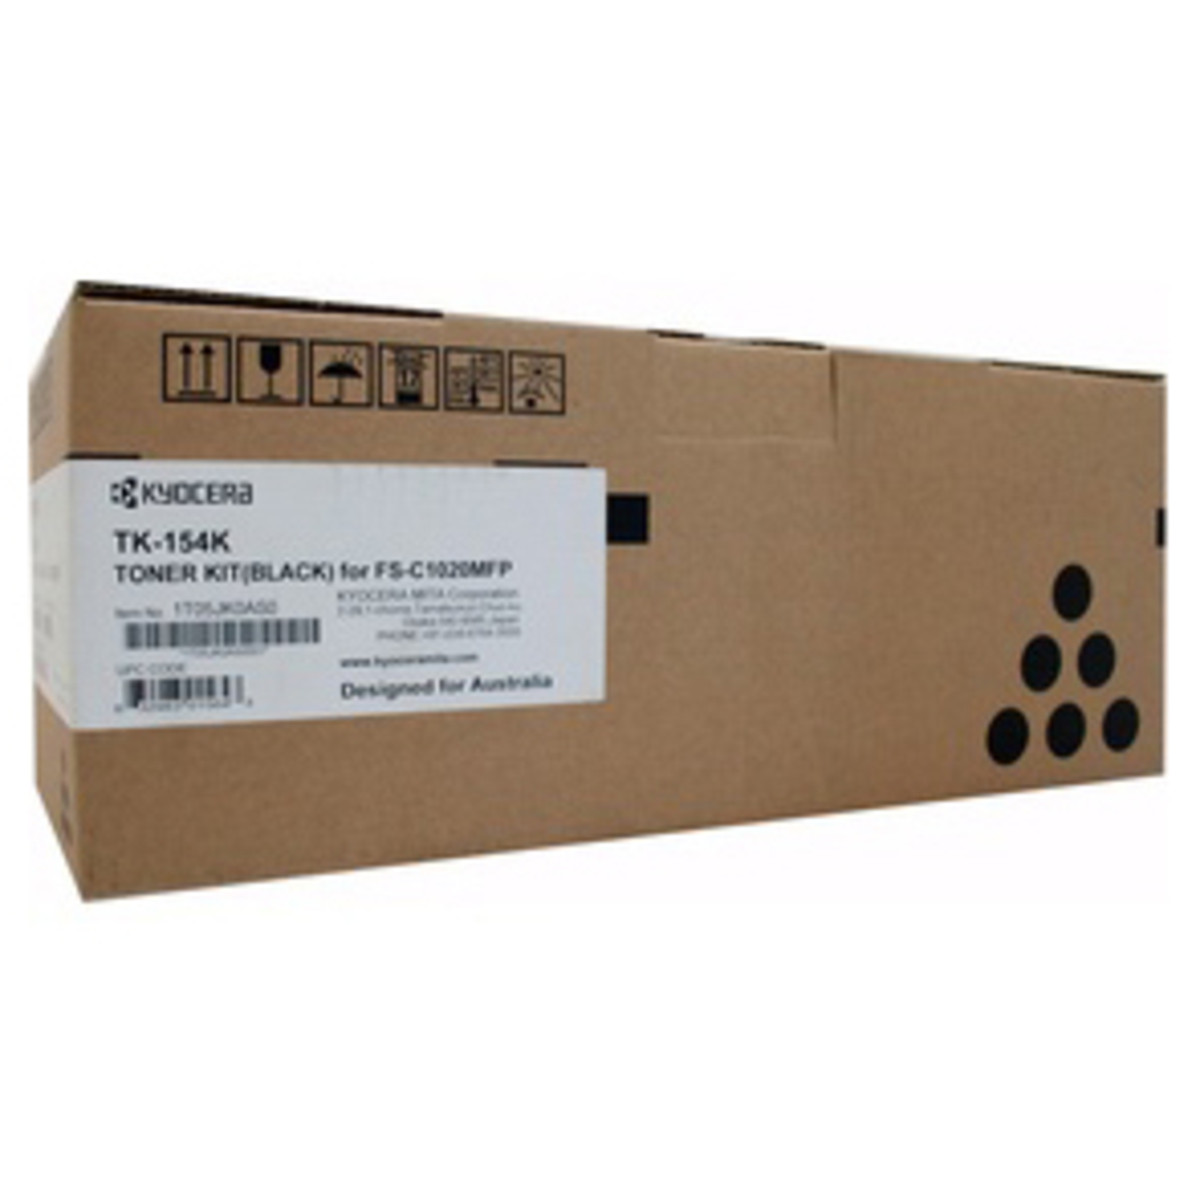 Kyocera TK-154K Black Toner Cartridge